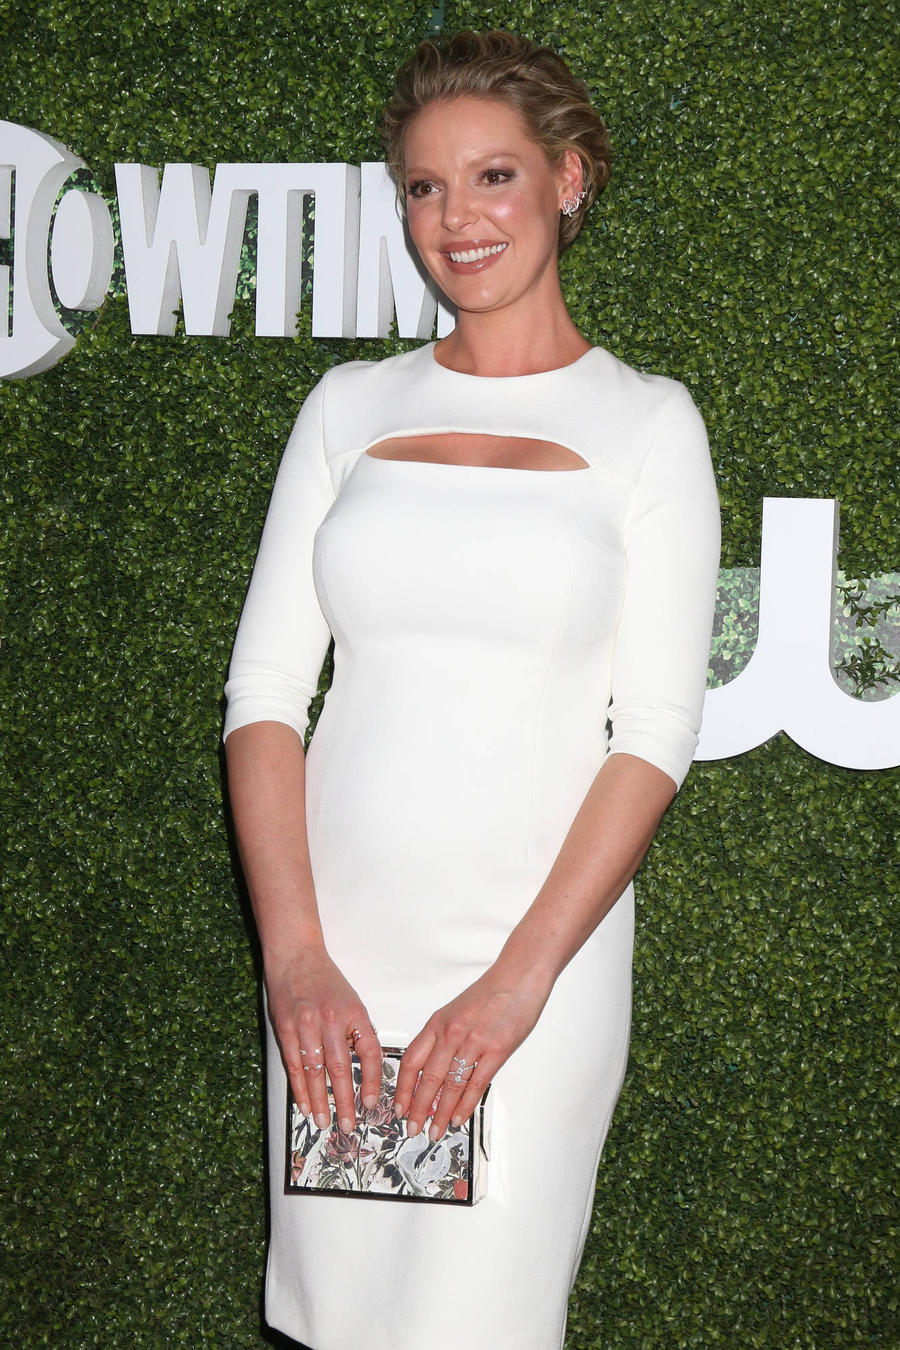 Katherine Heigl: 'Seth Rogen Handled Feud Beautifully'